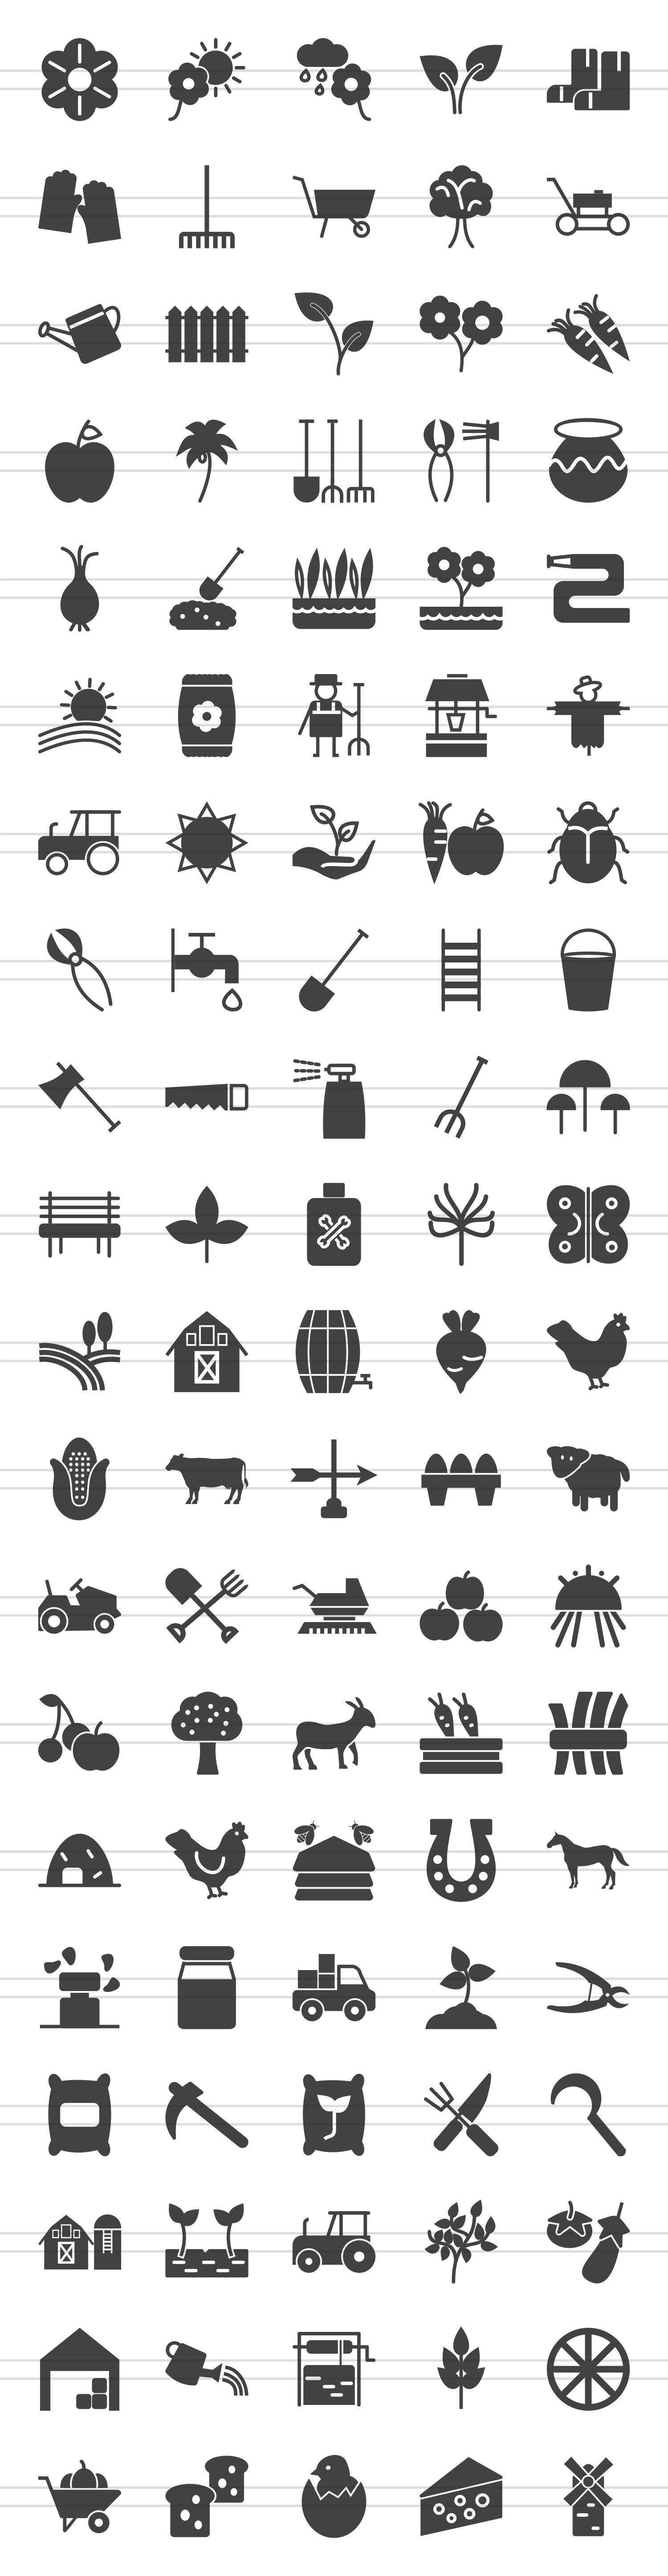 100 Farm & Gardening Glyph Icons example image 2